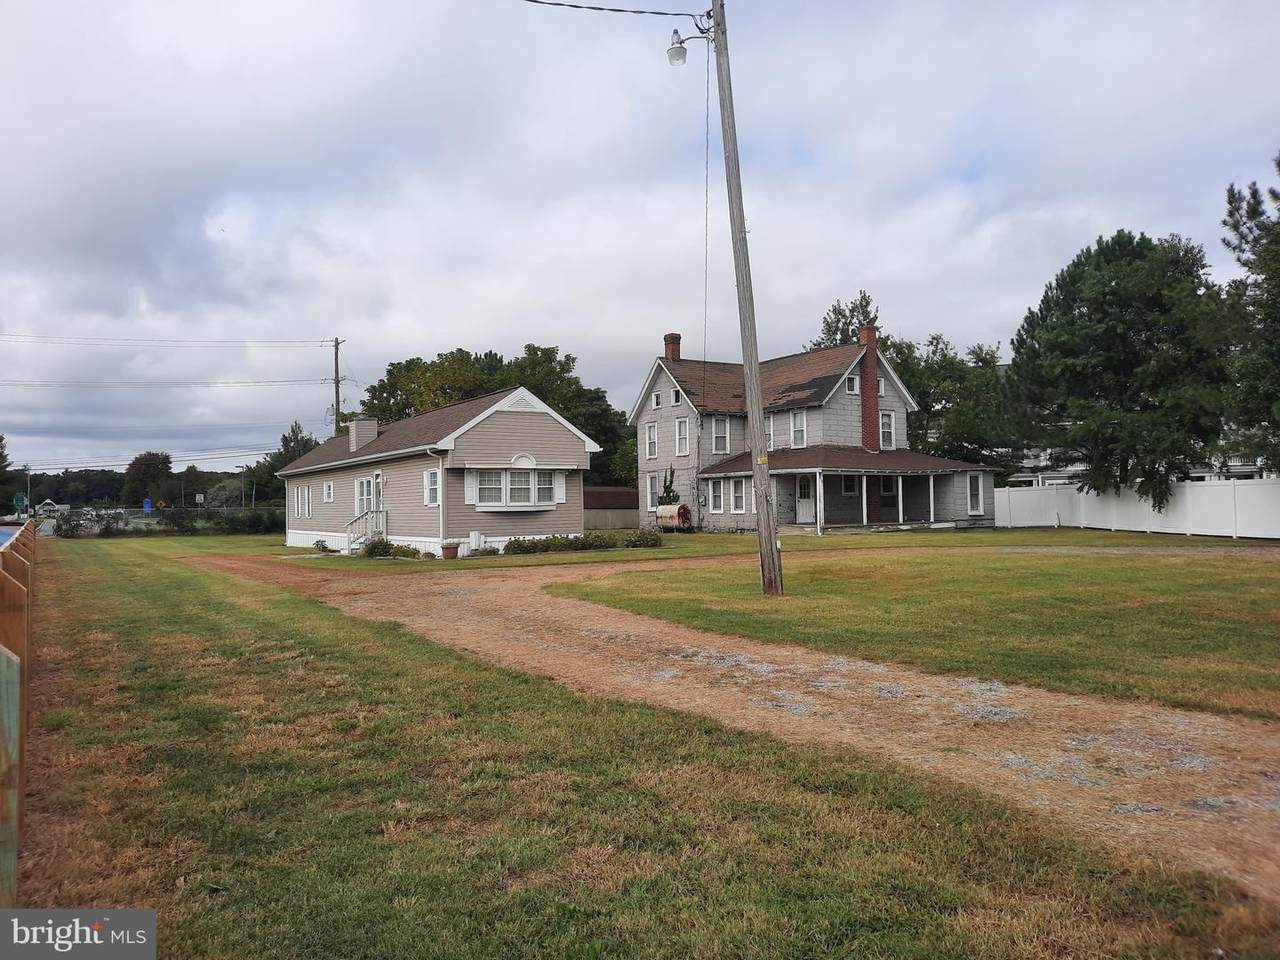 37311 Rehoboth Avenue Extension - Photo 1